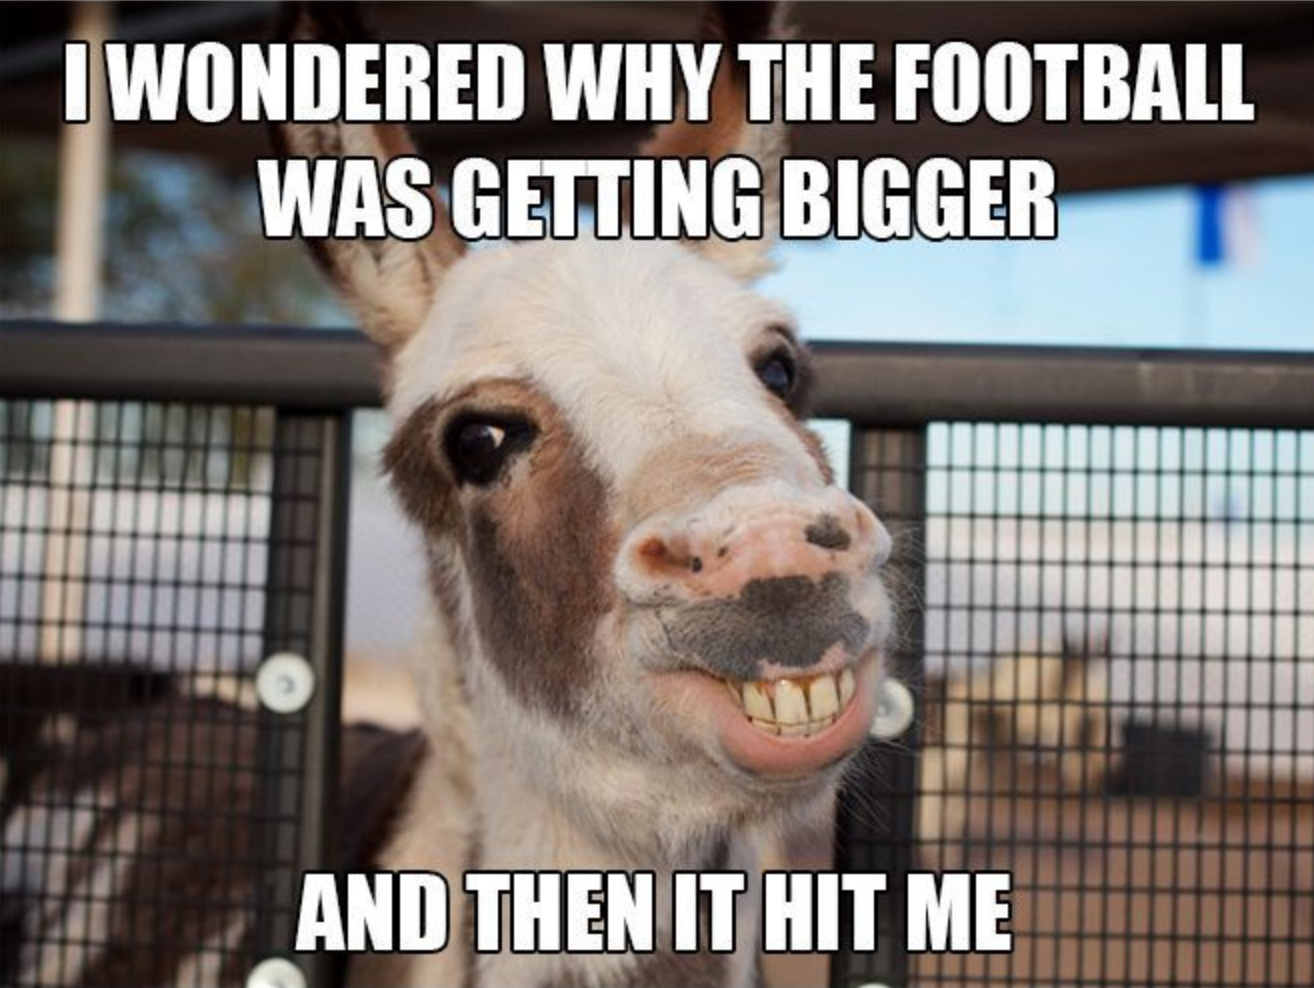 esel - football getting bigger - ball hit me -animal meme ... - photo#37